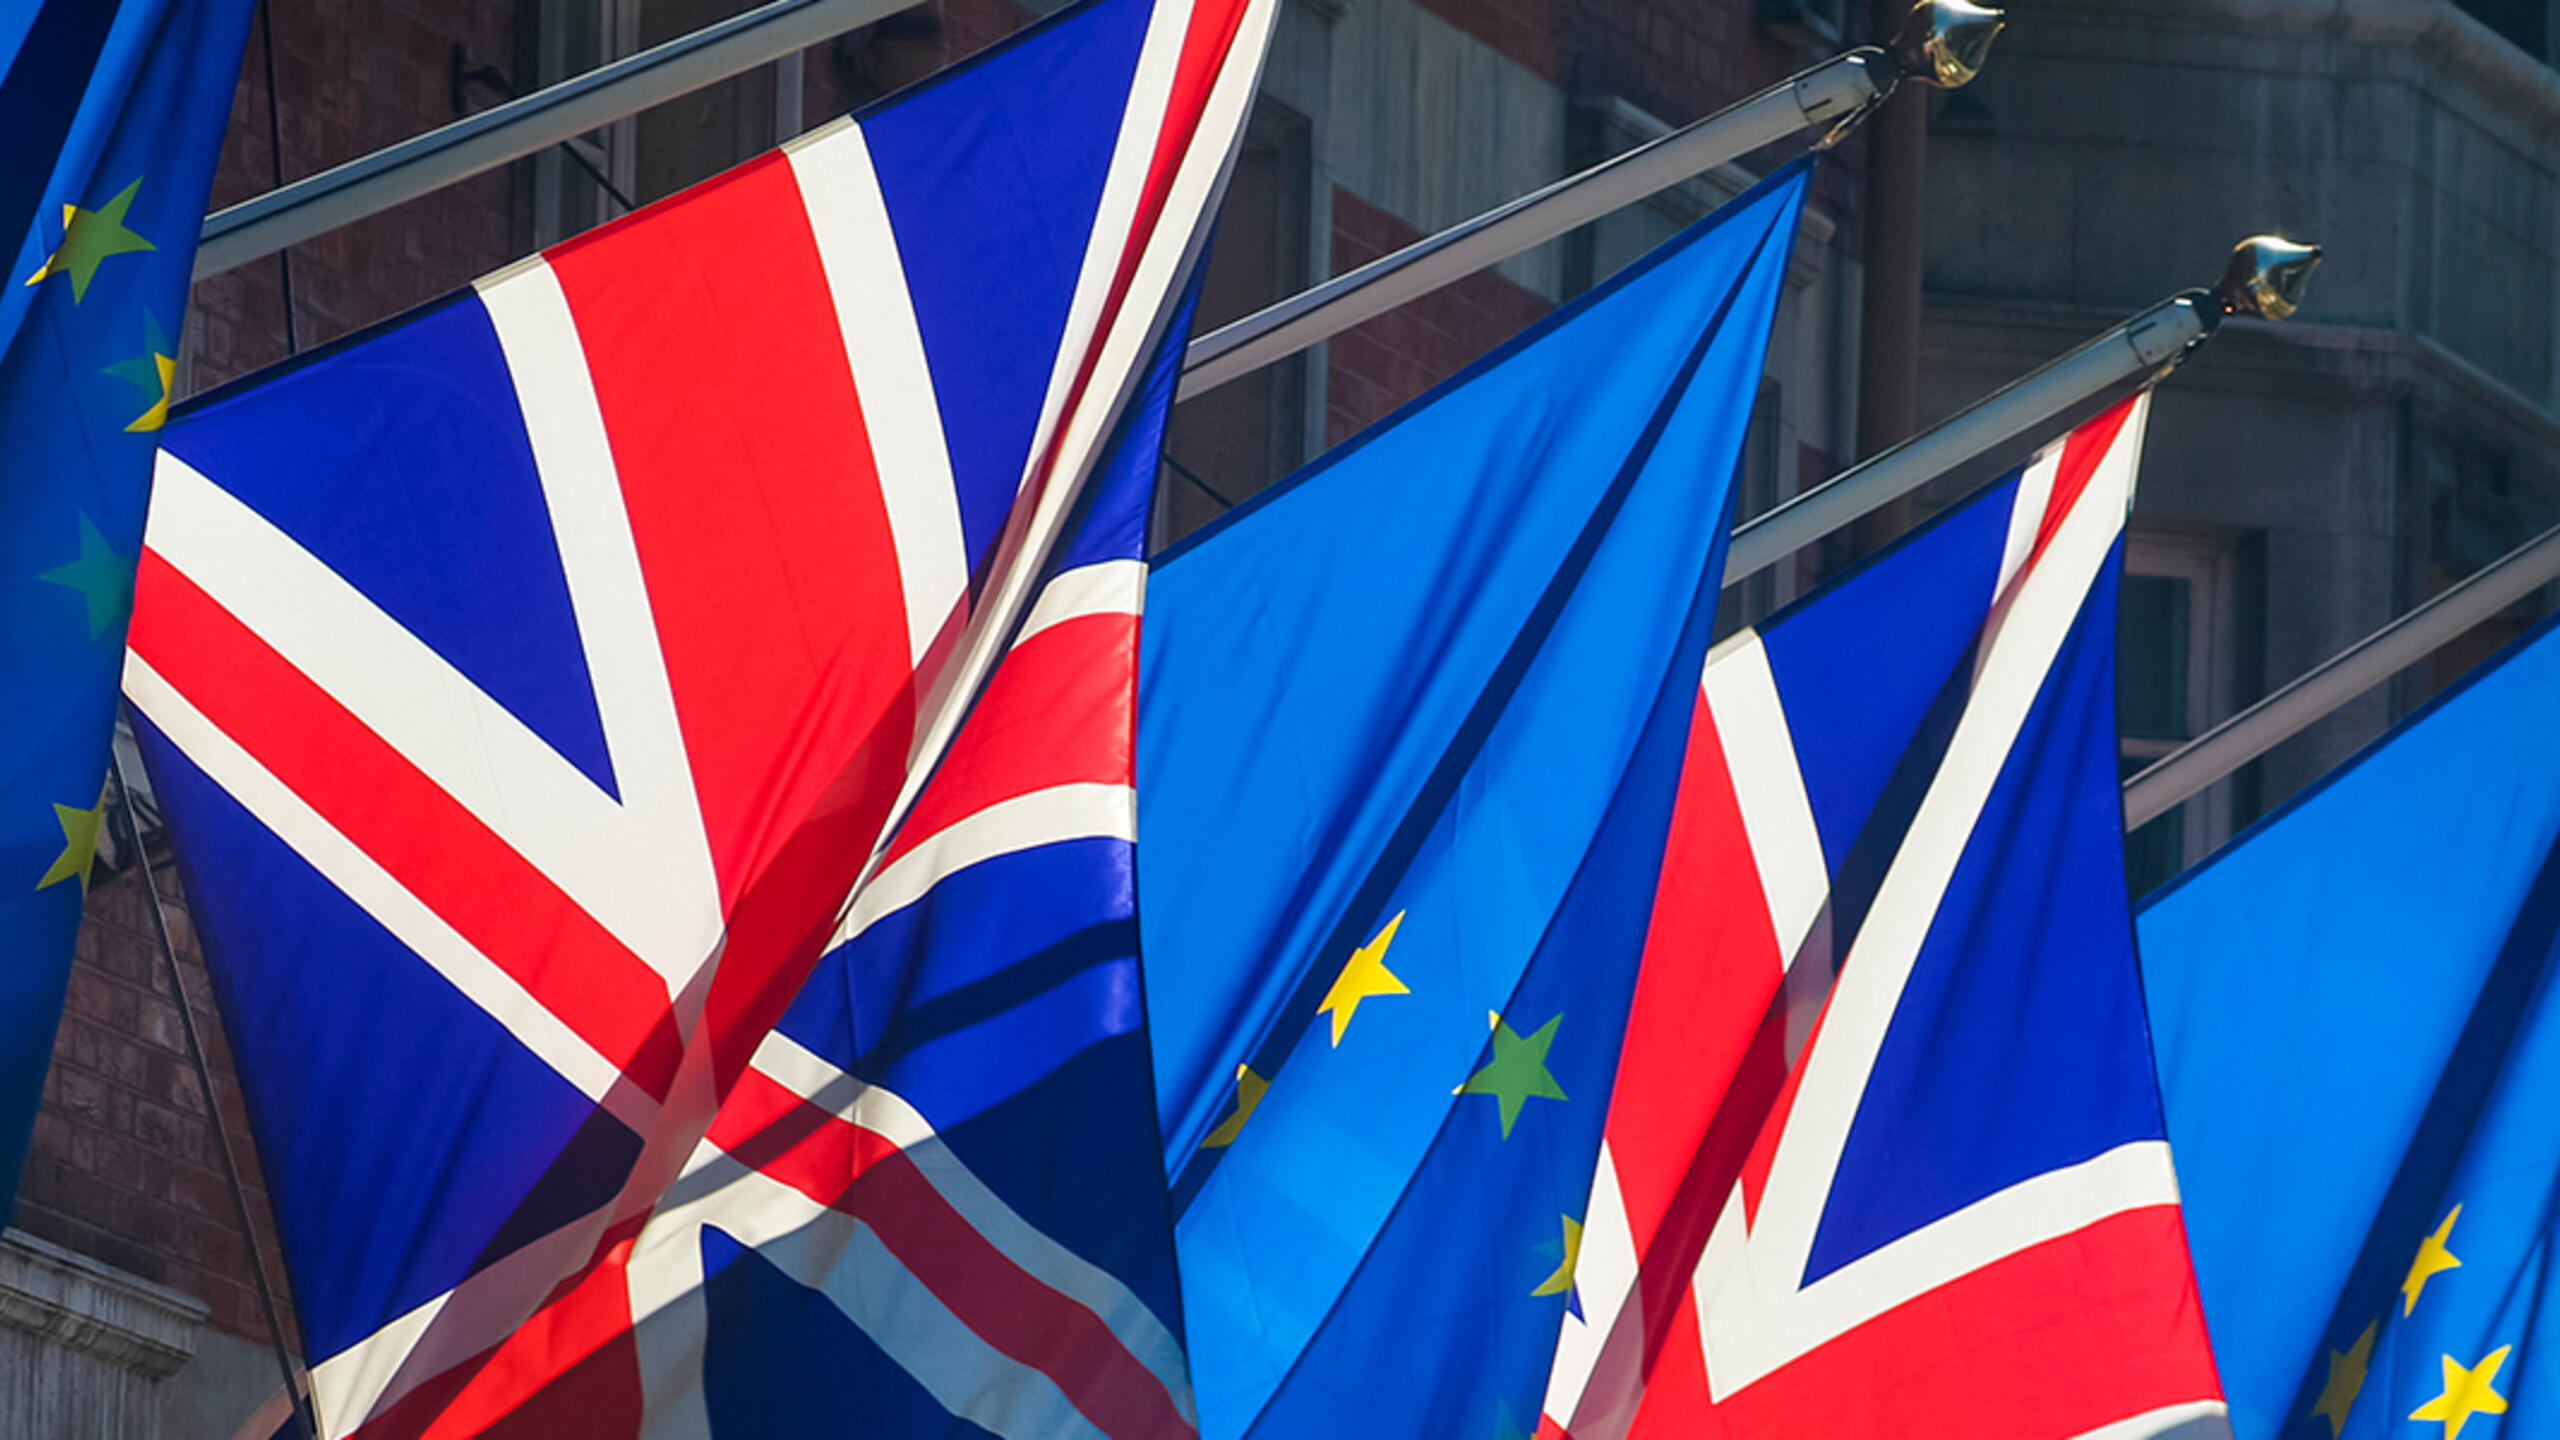 The flags of the UK and the EU